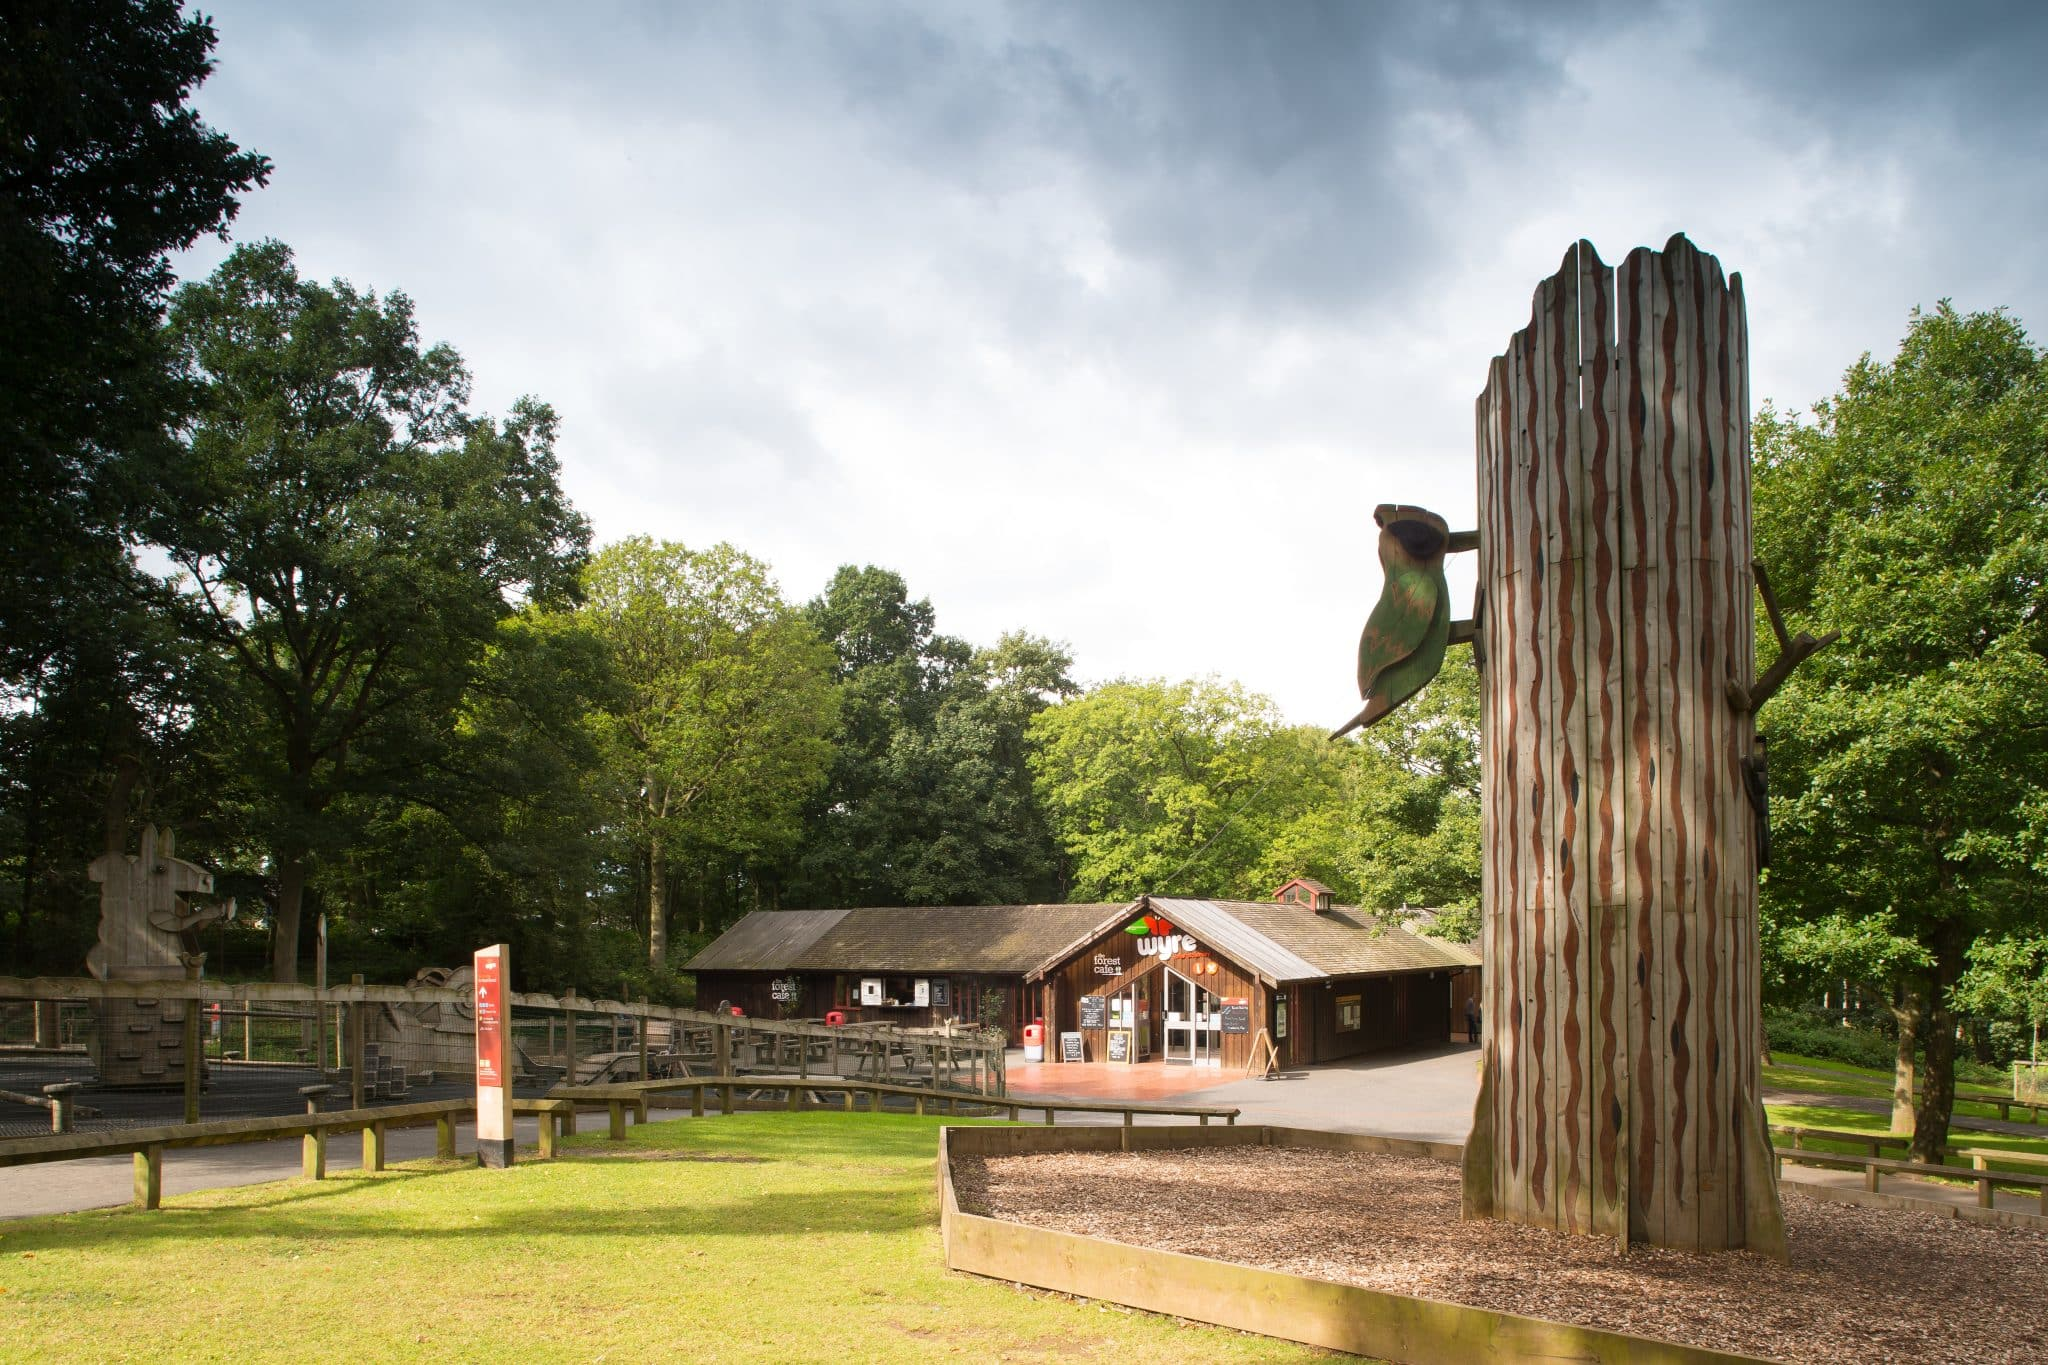 Wyre Forest Discovery Centre